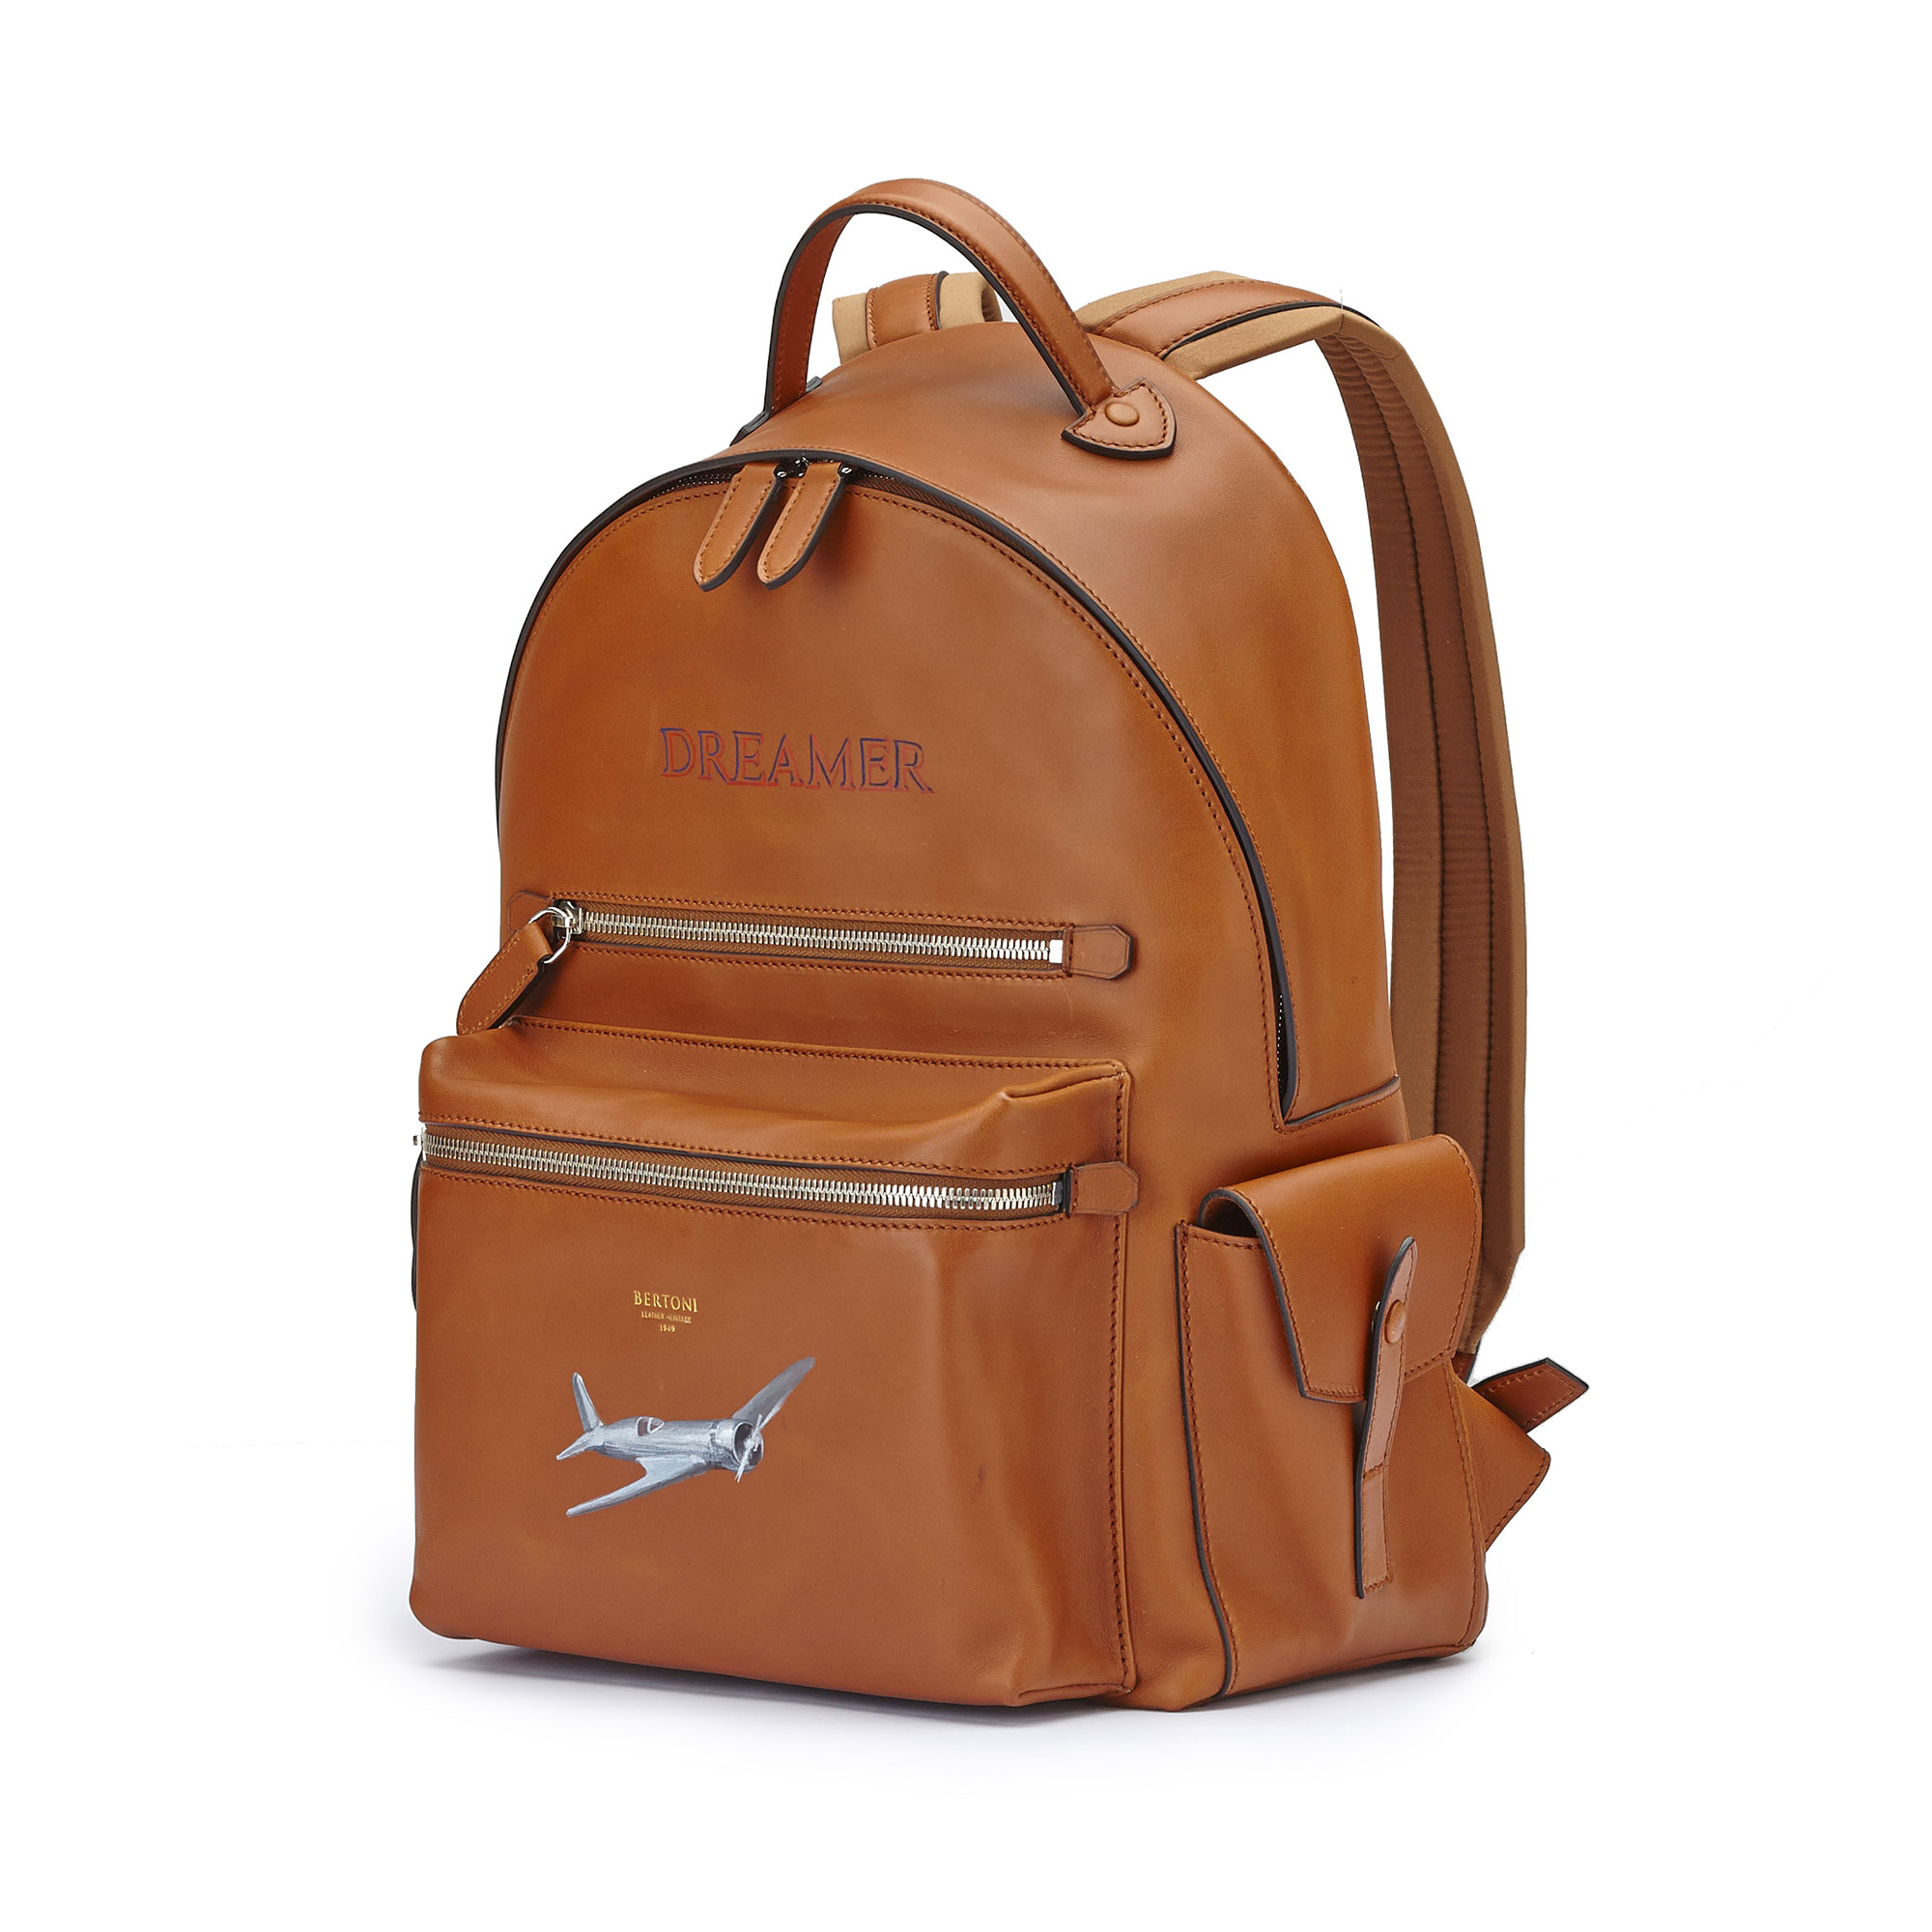 The terrabruciata french calf Zip Backpack by Bertoni 1949 03